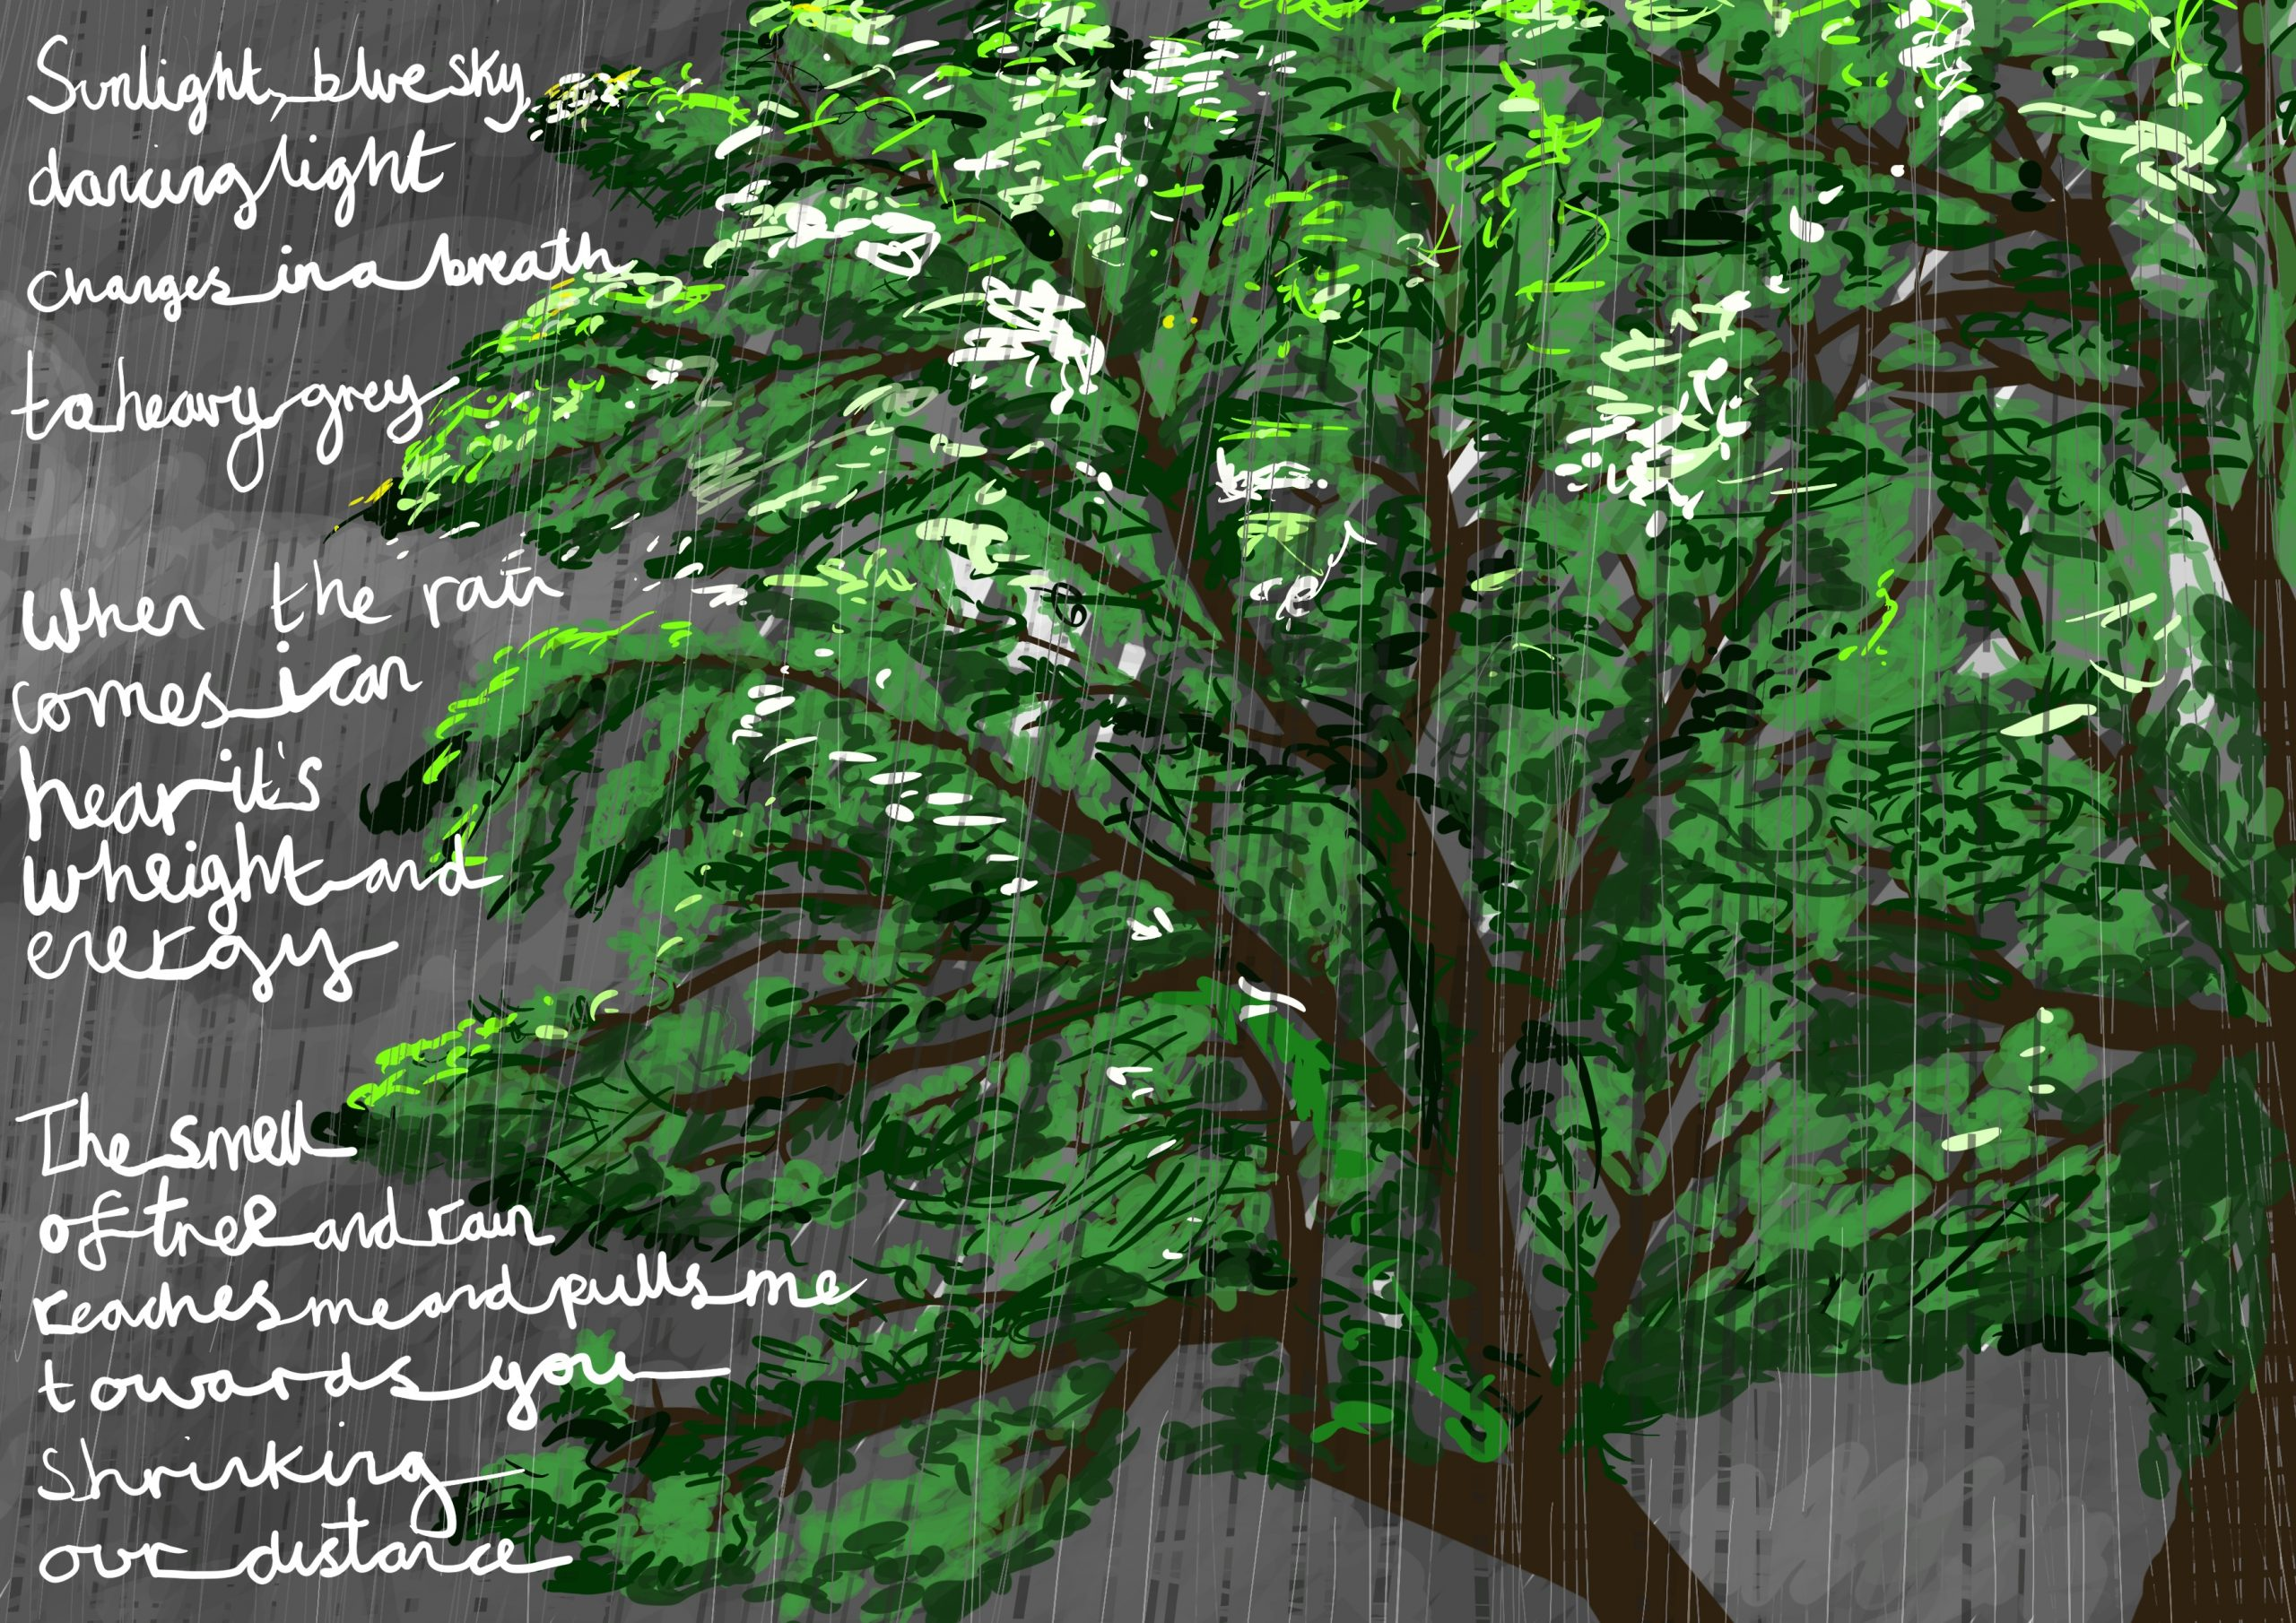 """Image shows a digital drawing by Touretteshero of one of the sycamore trees she can see from her bedroom window. The sycamore tree is a lush early summer green on a stormy evening. The sky is grey and thick with rain. It is raining heavily with the following accompanying text: """"Sunlight, blue sky, dancing shadows, it all changes in a breath to heavy grey. When the rain comes, I can hear its weight and energy. The smell of tree and rain reaches me and pulls me towards you, shrinking our distance apart."""""""